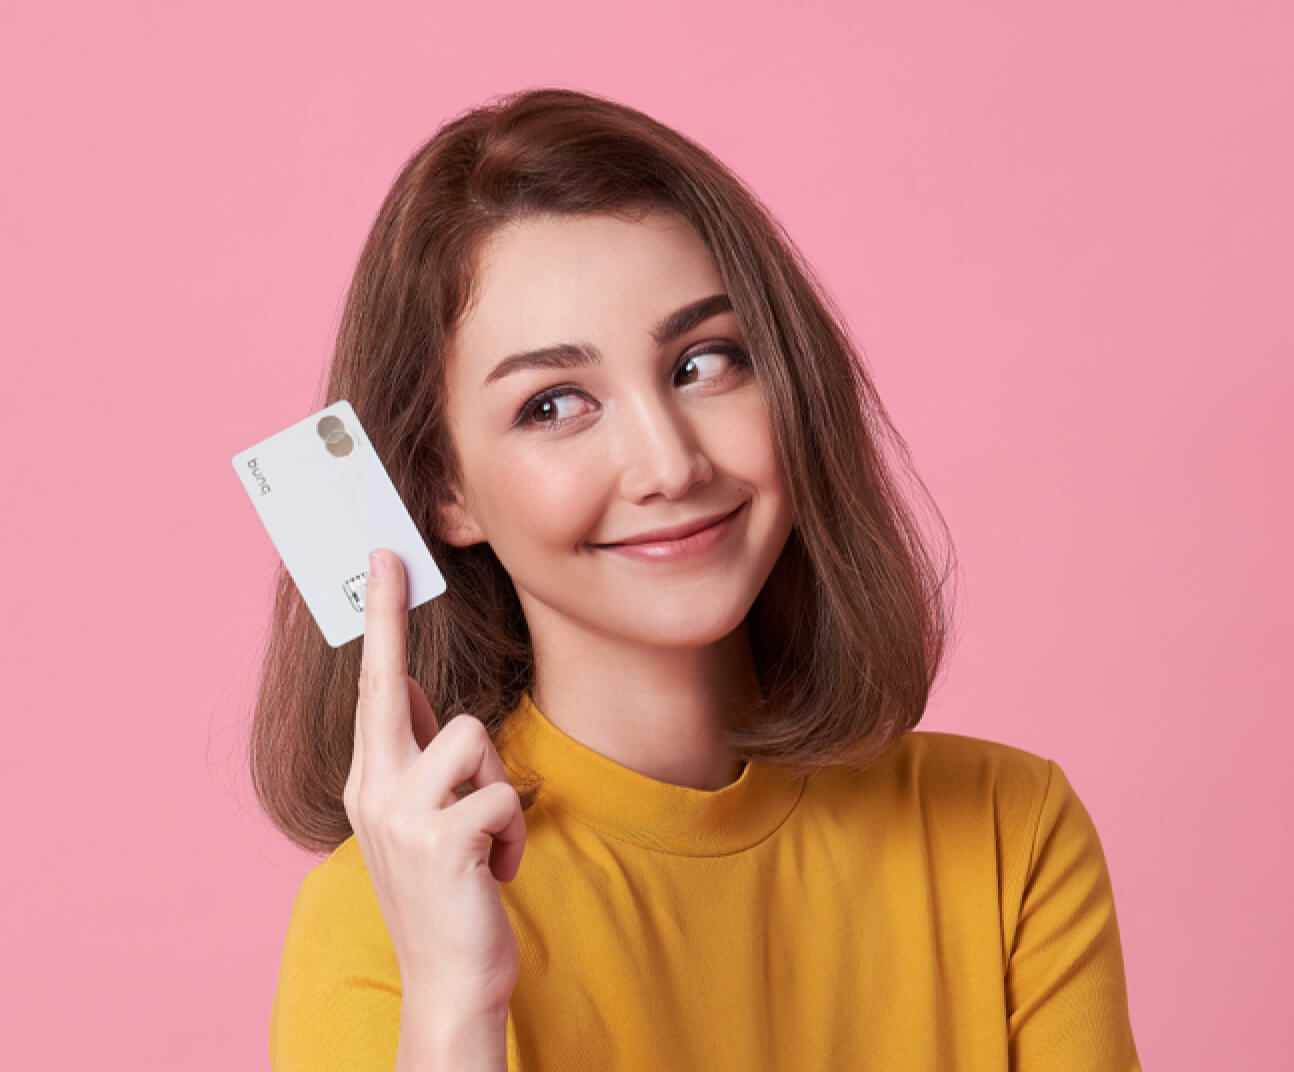 Woman holding a Metal Card